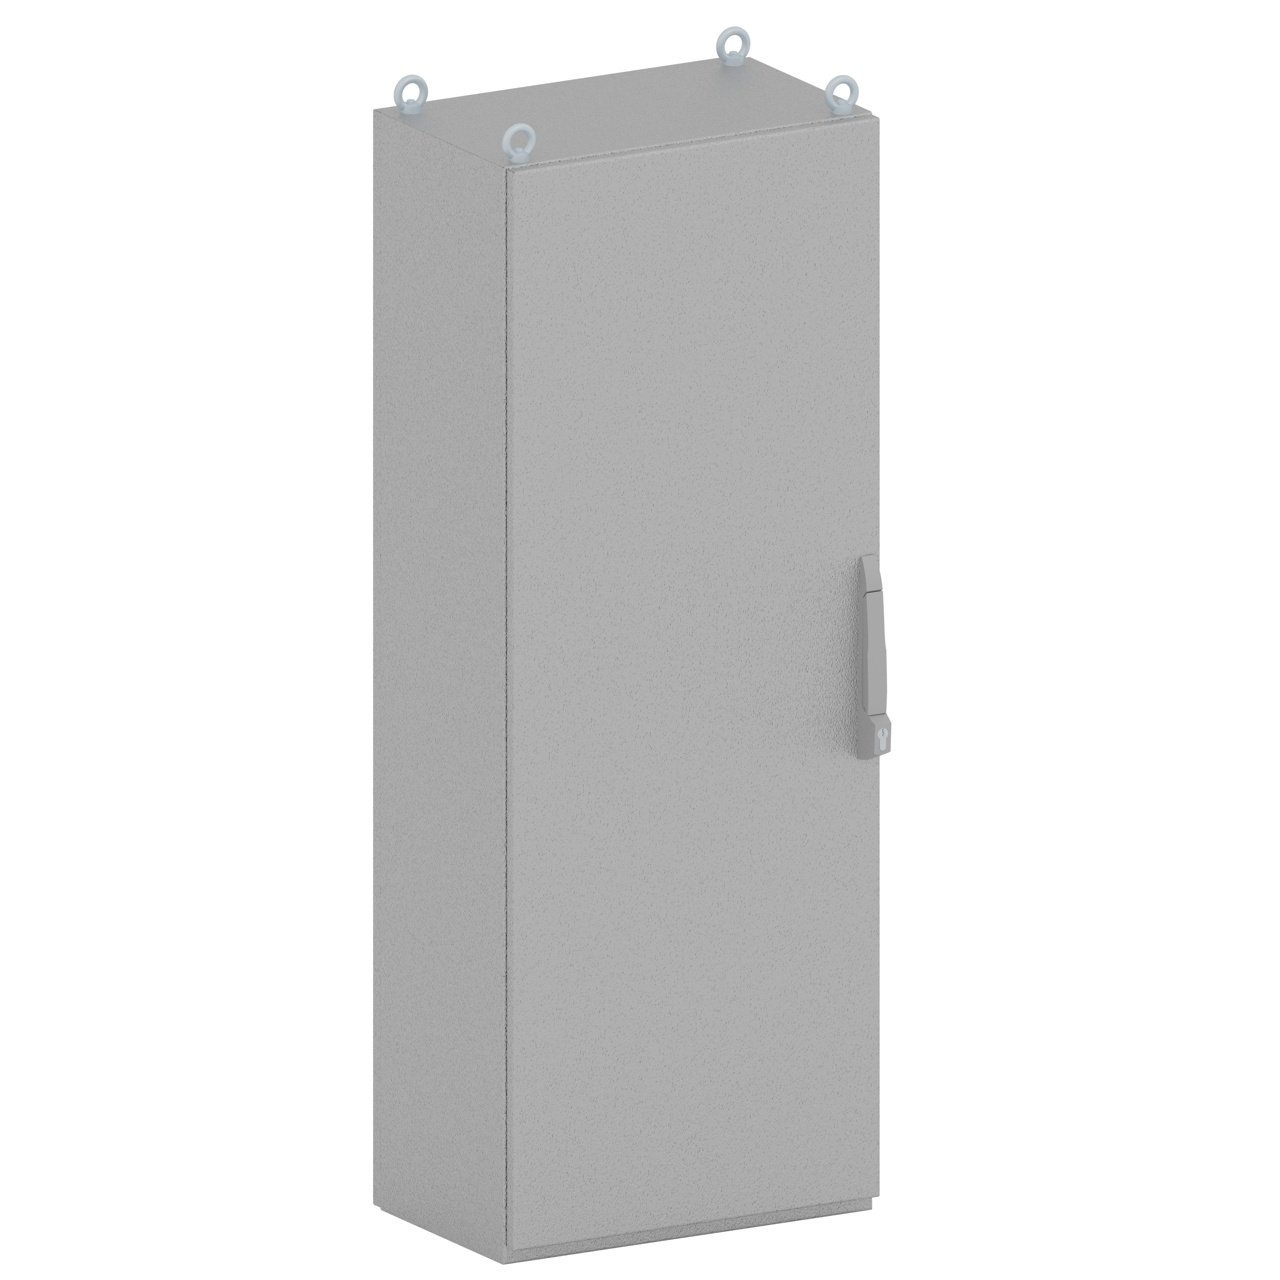 Senco's uniquely designed KAPPA one-door electrical enclosure (2200x600x100mm) has a compact steel sheet metal design.